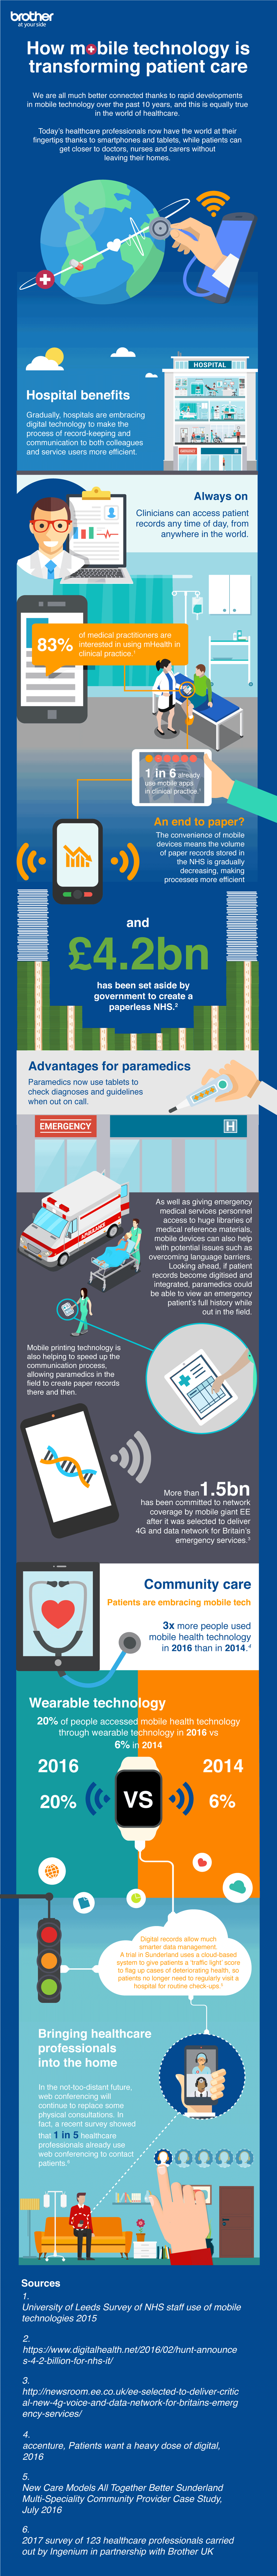 Brother healthcare infographic showing how mobile technology is transforming patient care